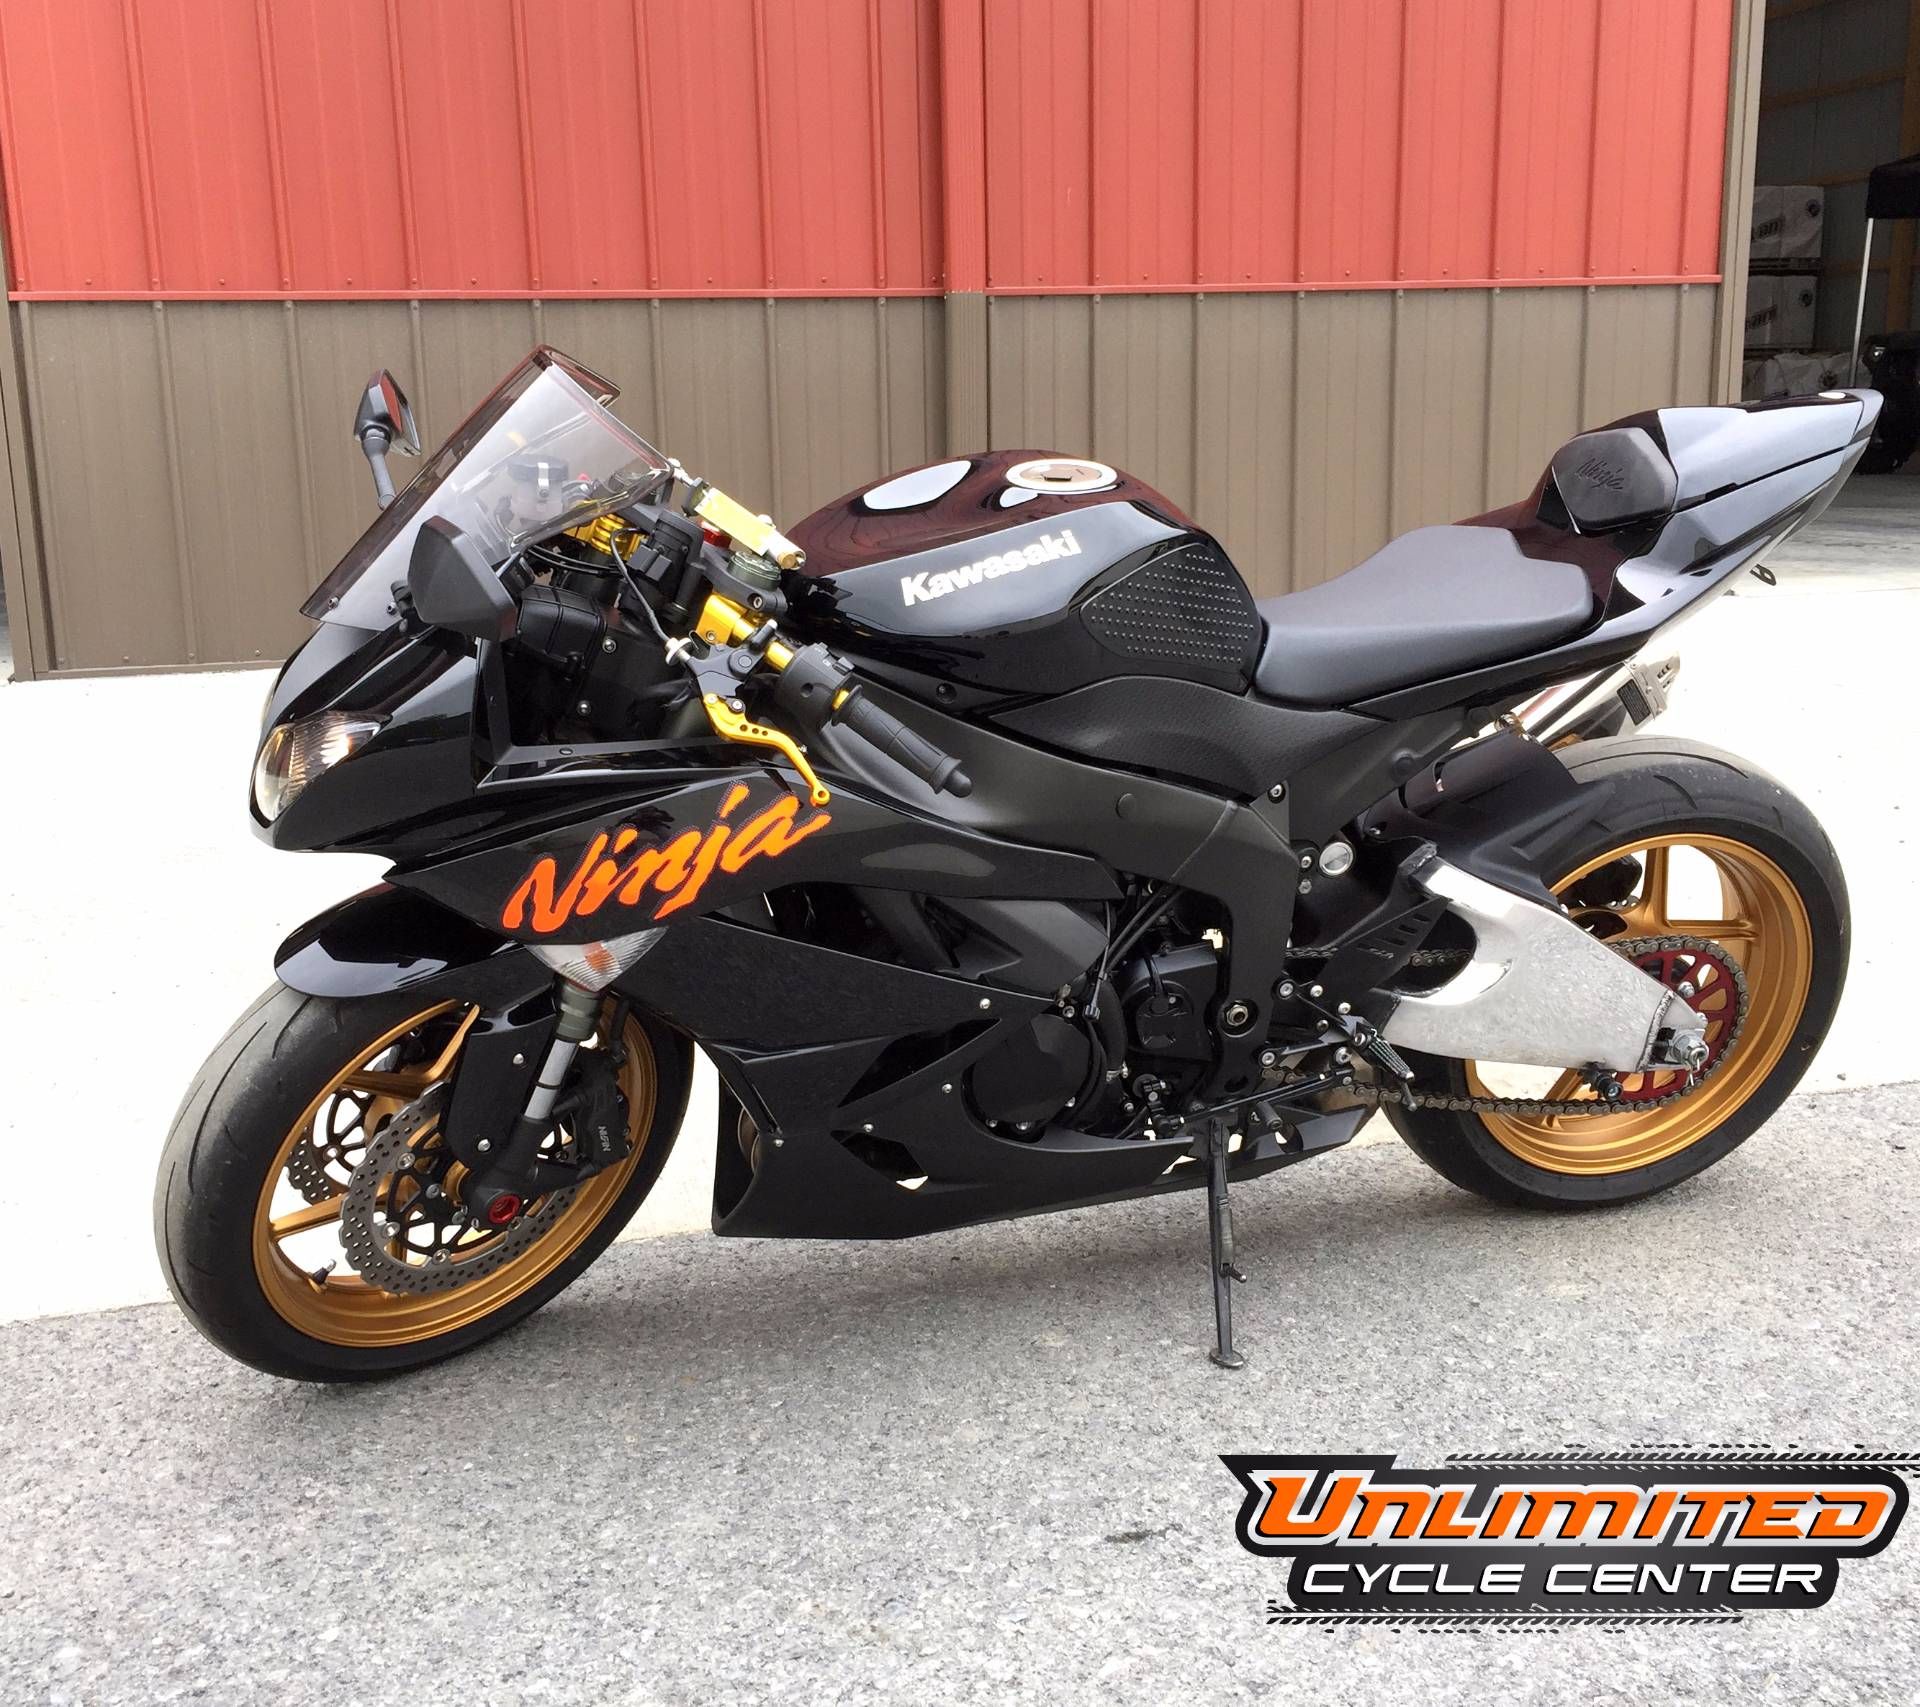 2009 kawasaki ninja zx 6r motorcycles tyrone pennsylvania. Black Bedroom Furniture Sets. Home Design Ideas